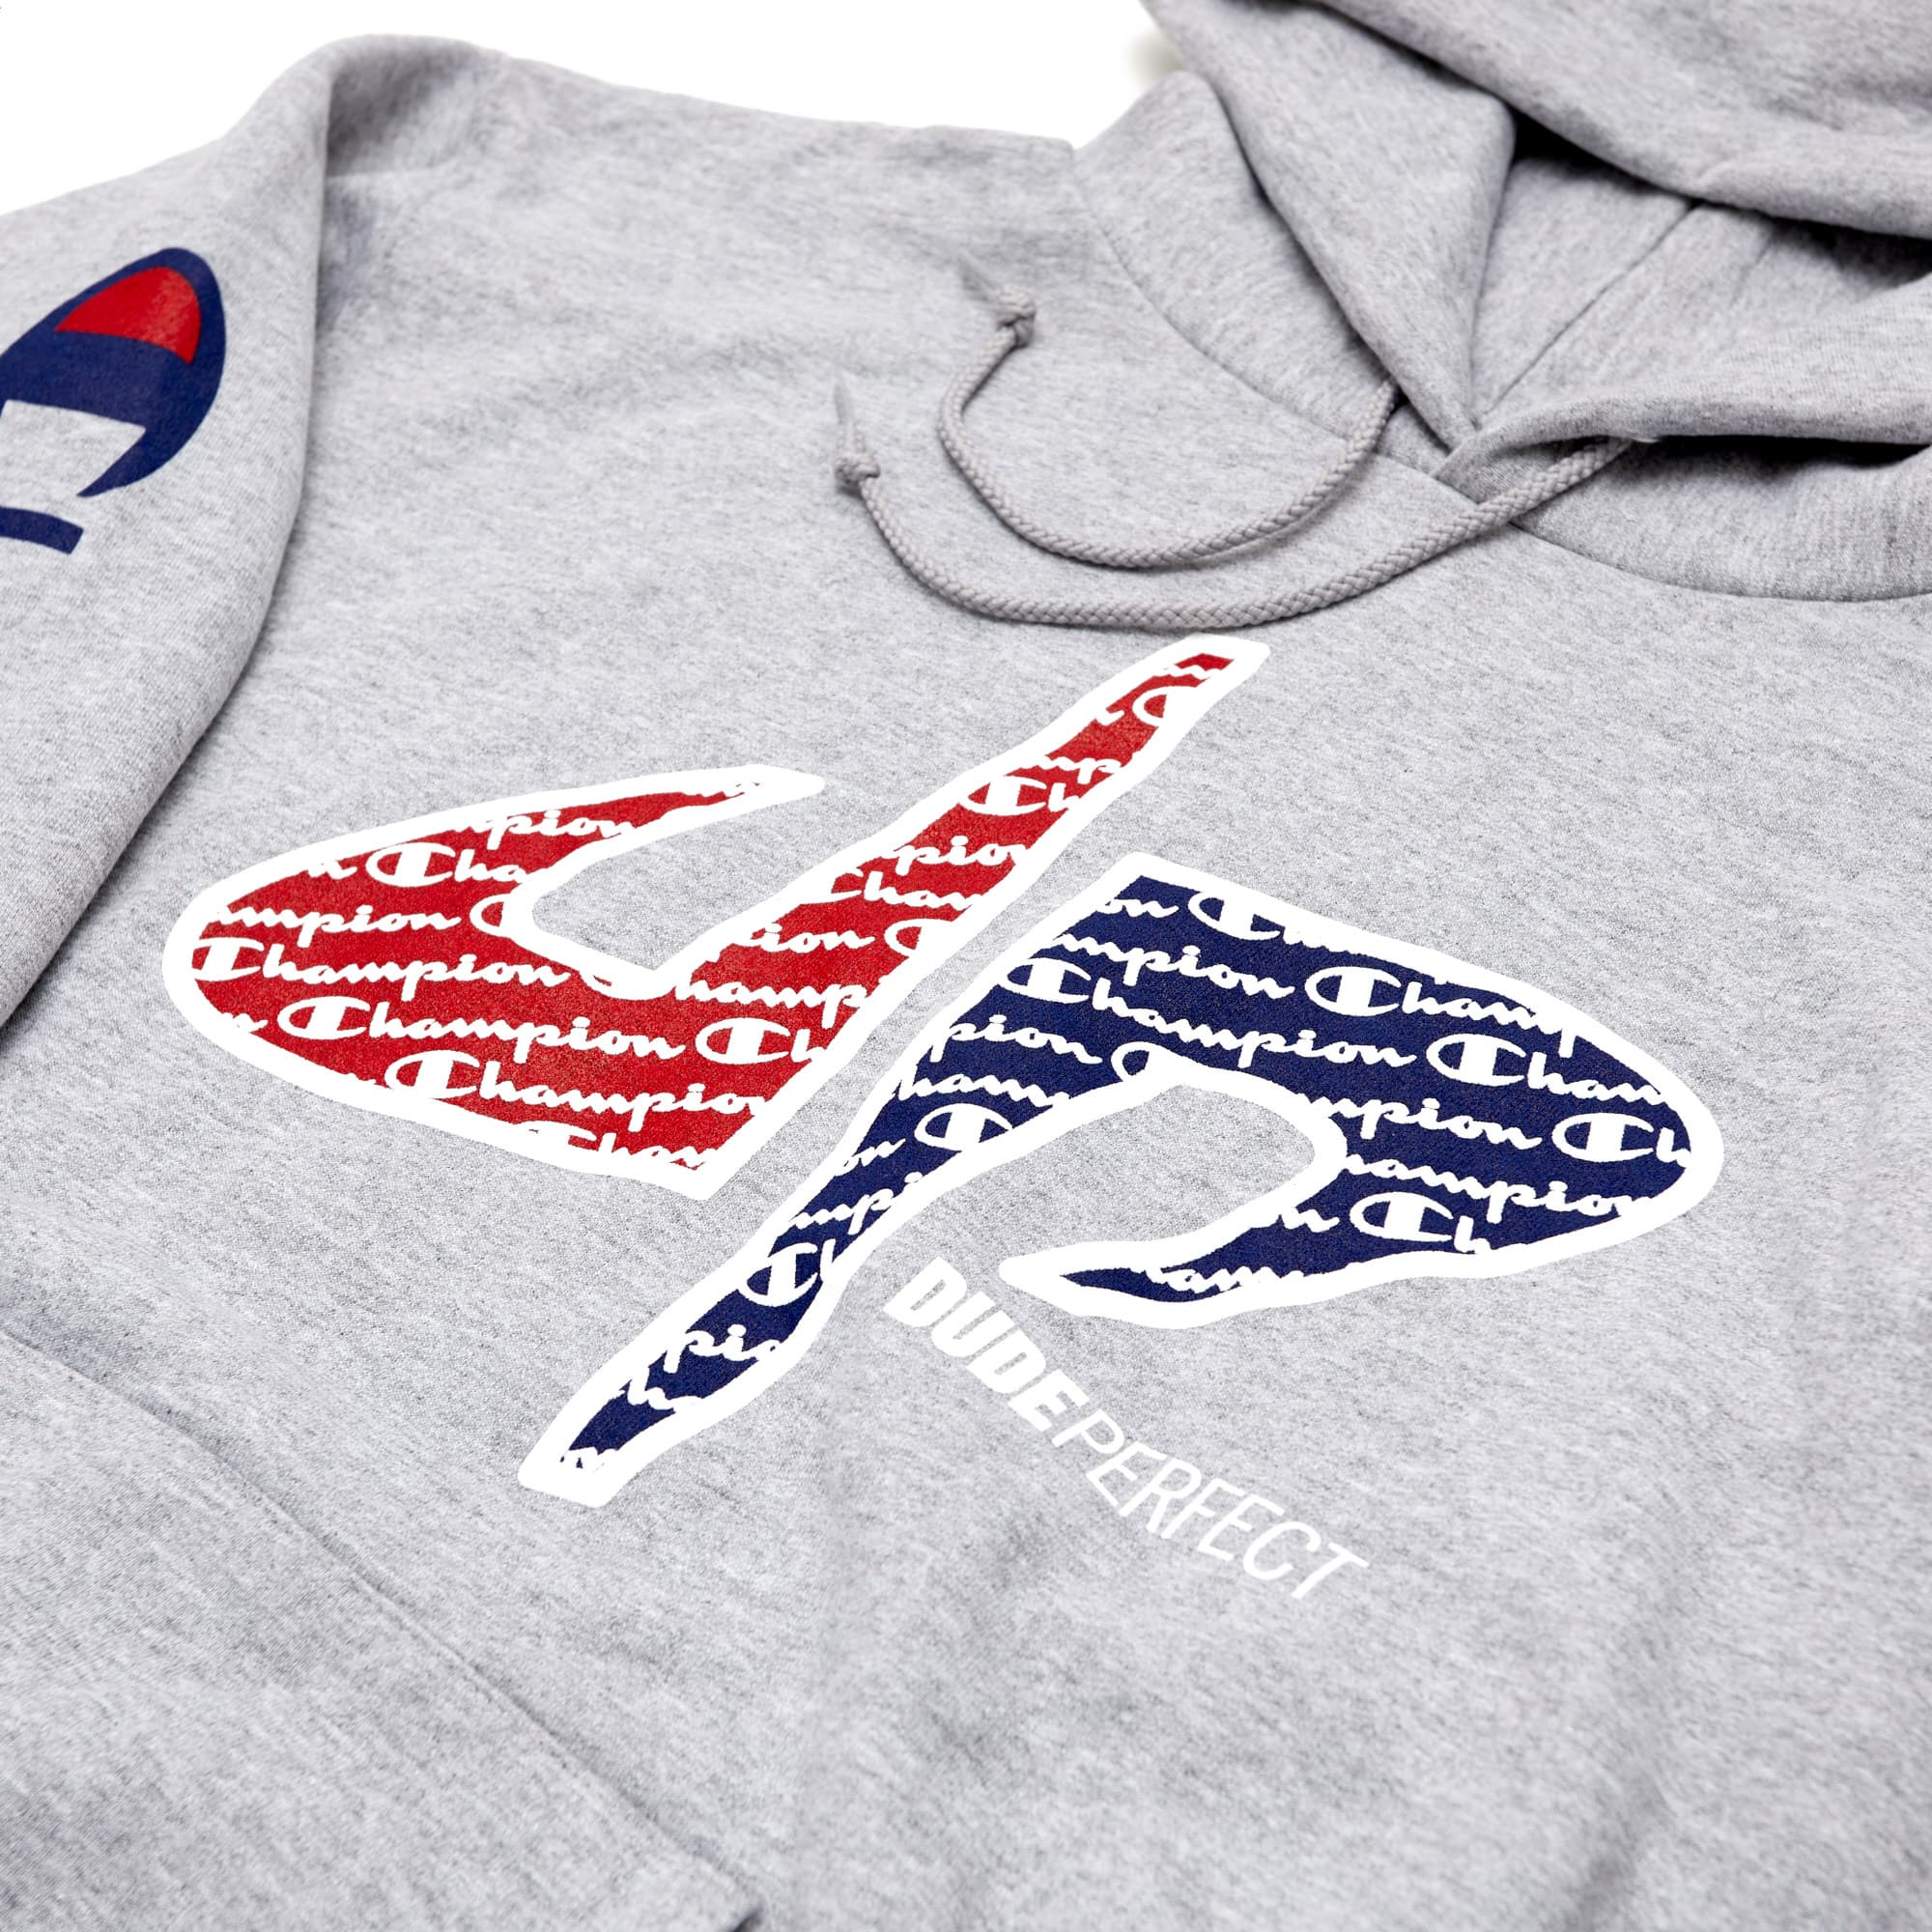 Official Dude Perfect x Champion Collaboration Hoodie - Limited Edition